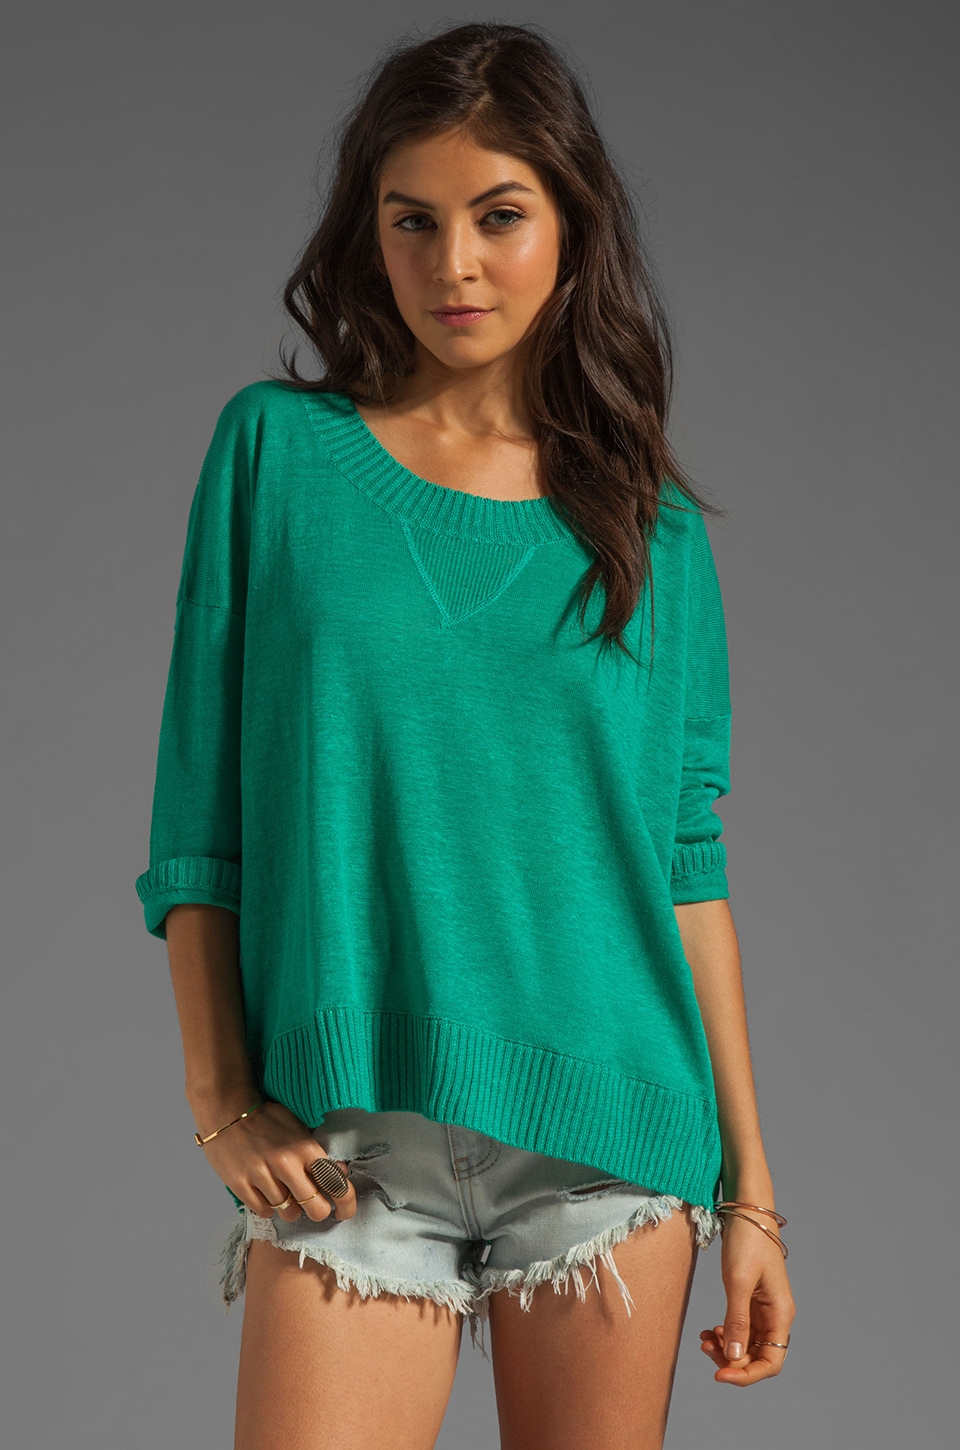 Central Park West Texarkana Linen Varsity Pullover in Jade